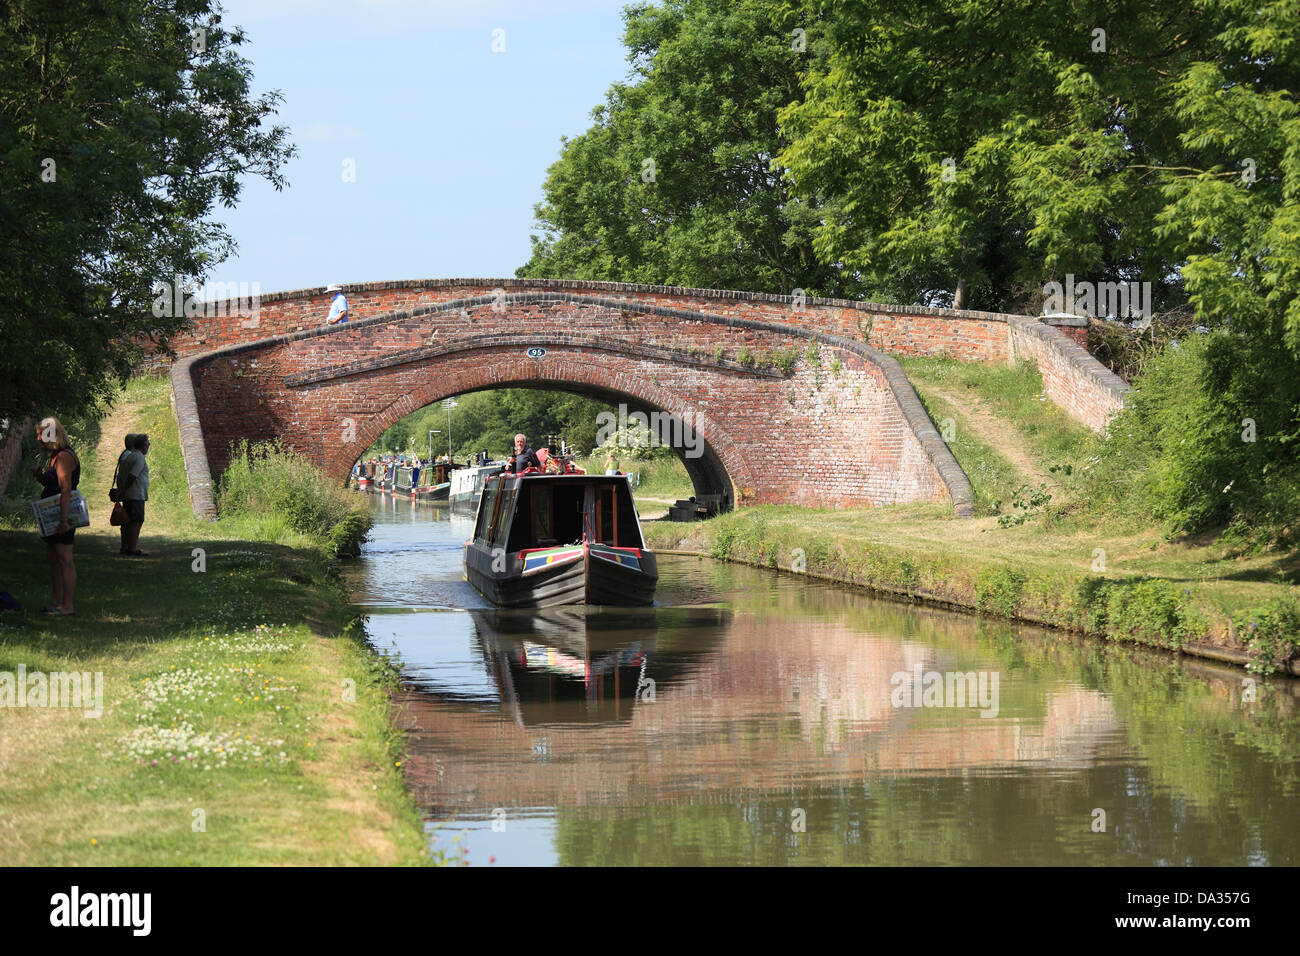 A narrowboat passing under the turnover bridge on the Oxford Canal at Braunston, Northamptonshire - Stock Image